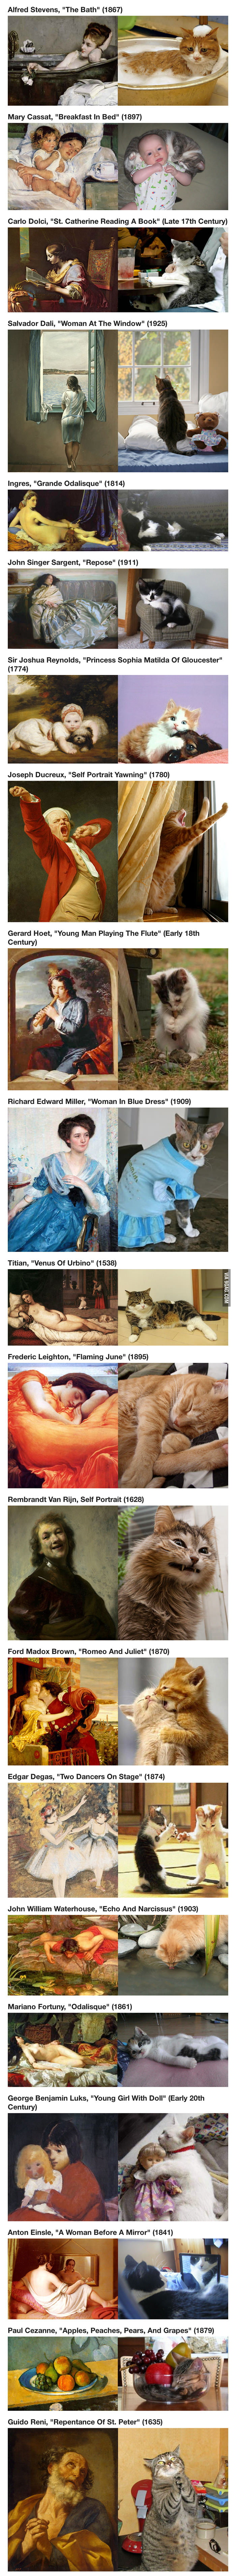 Cats Imitating Art